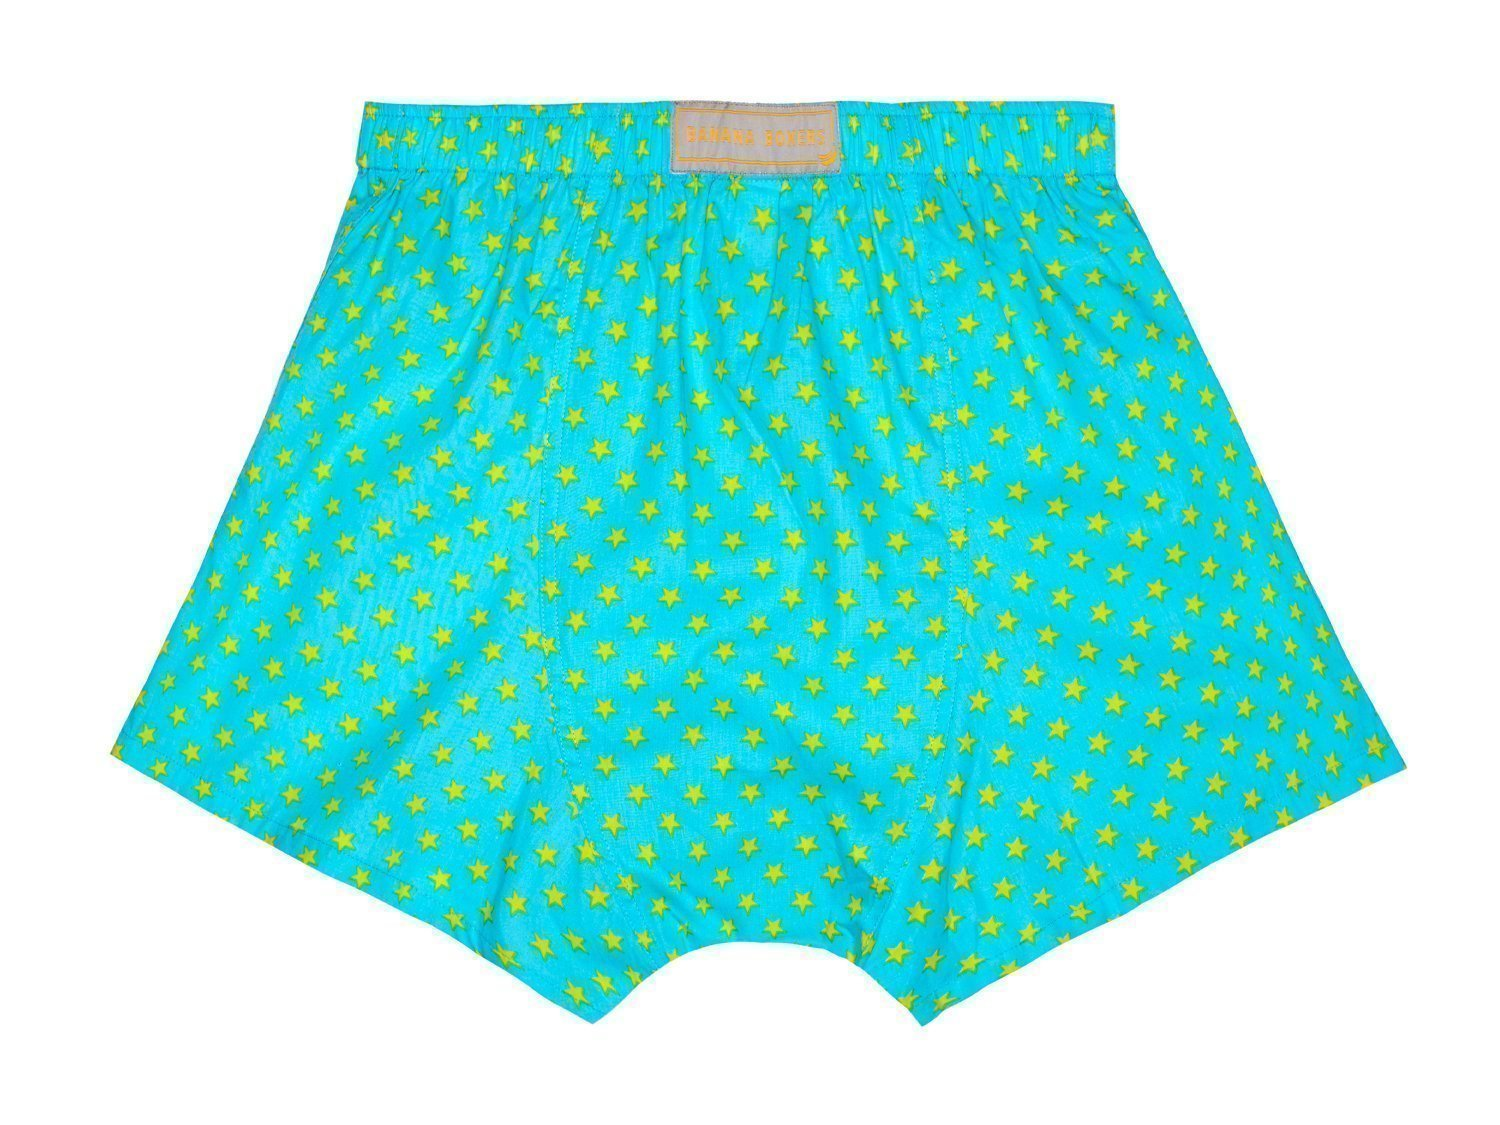 Starry Eyed Boxer Shorts back